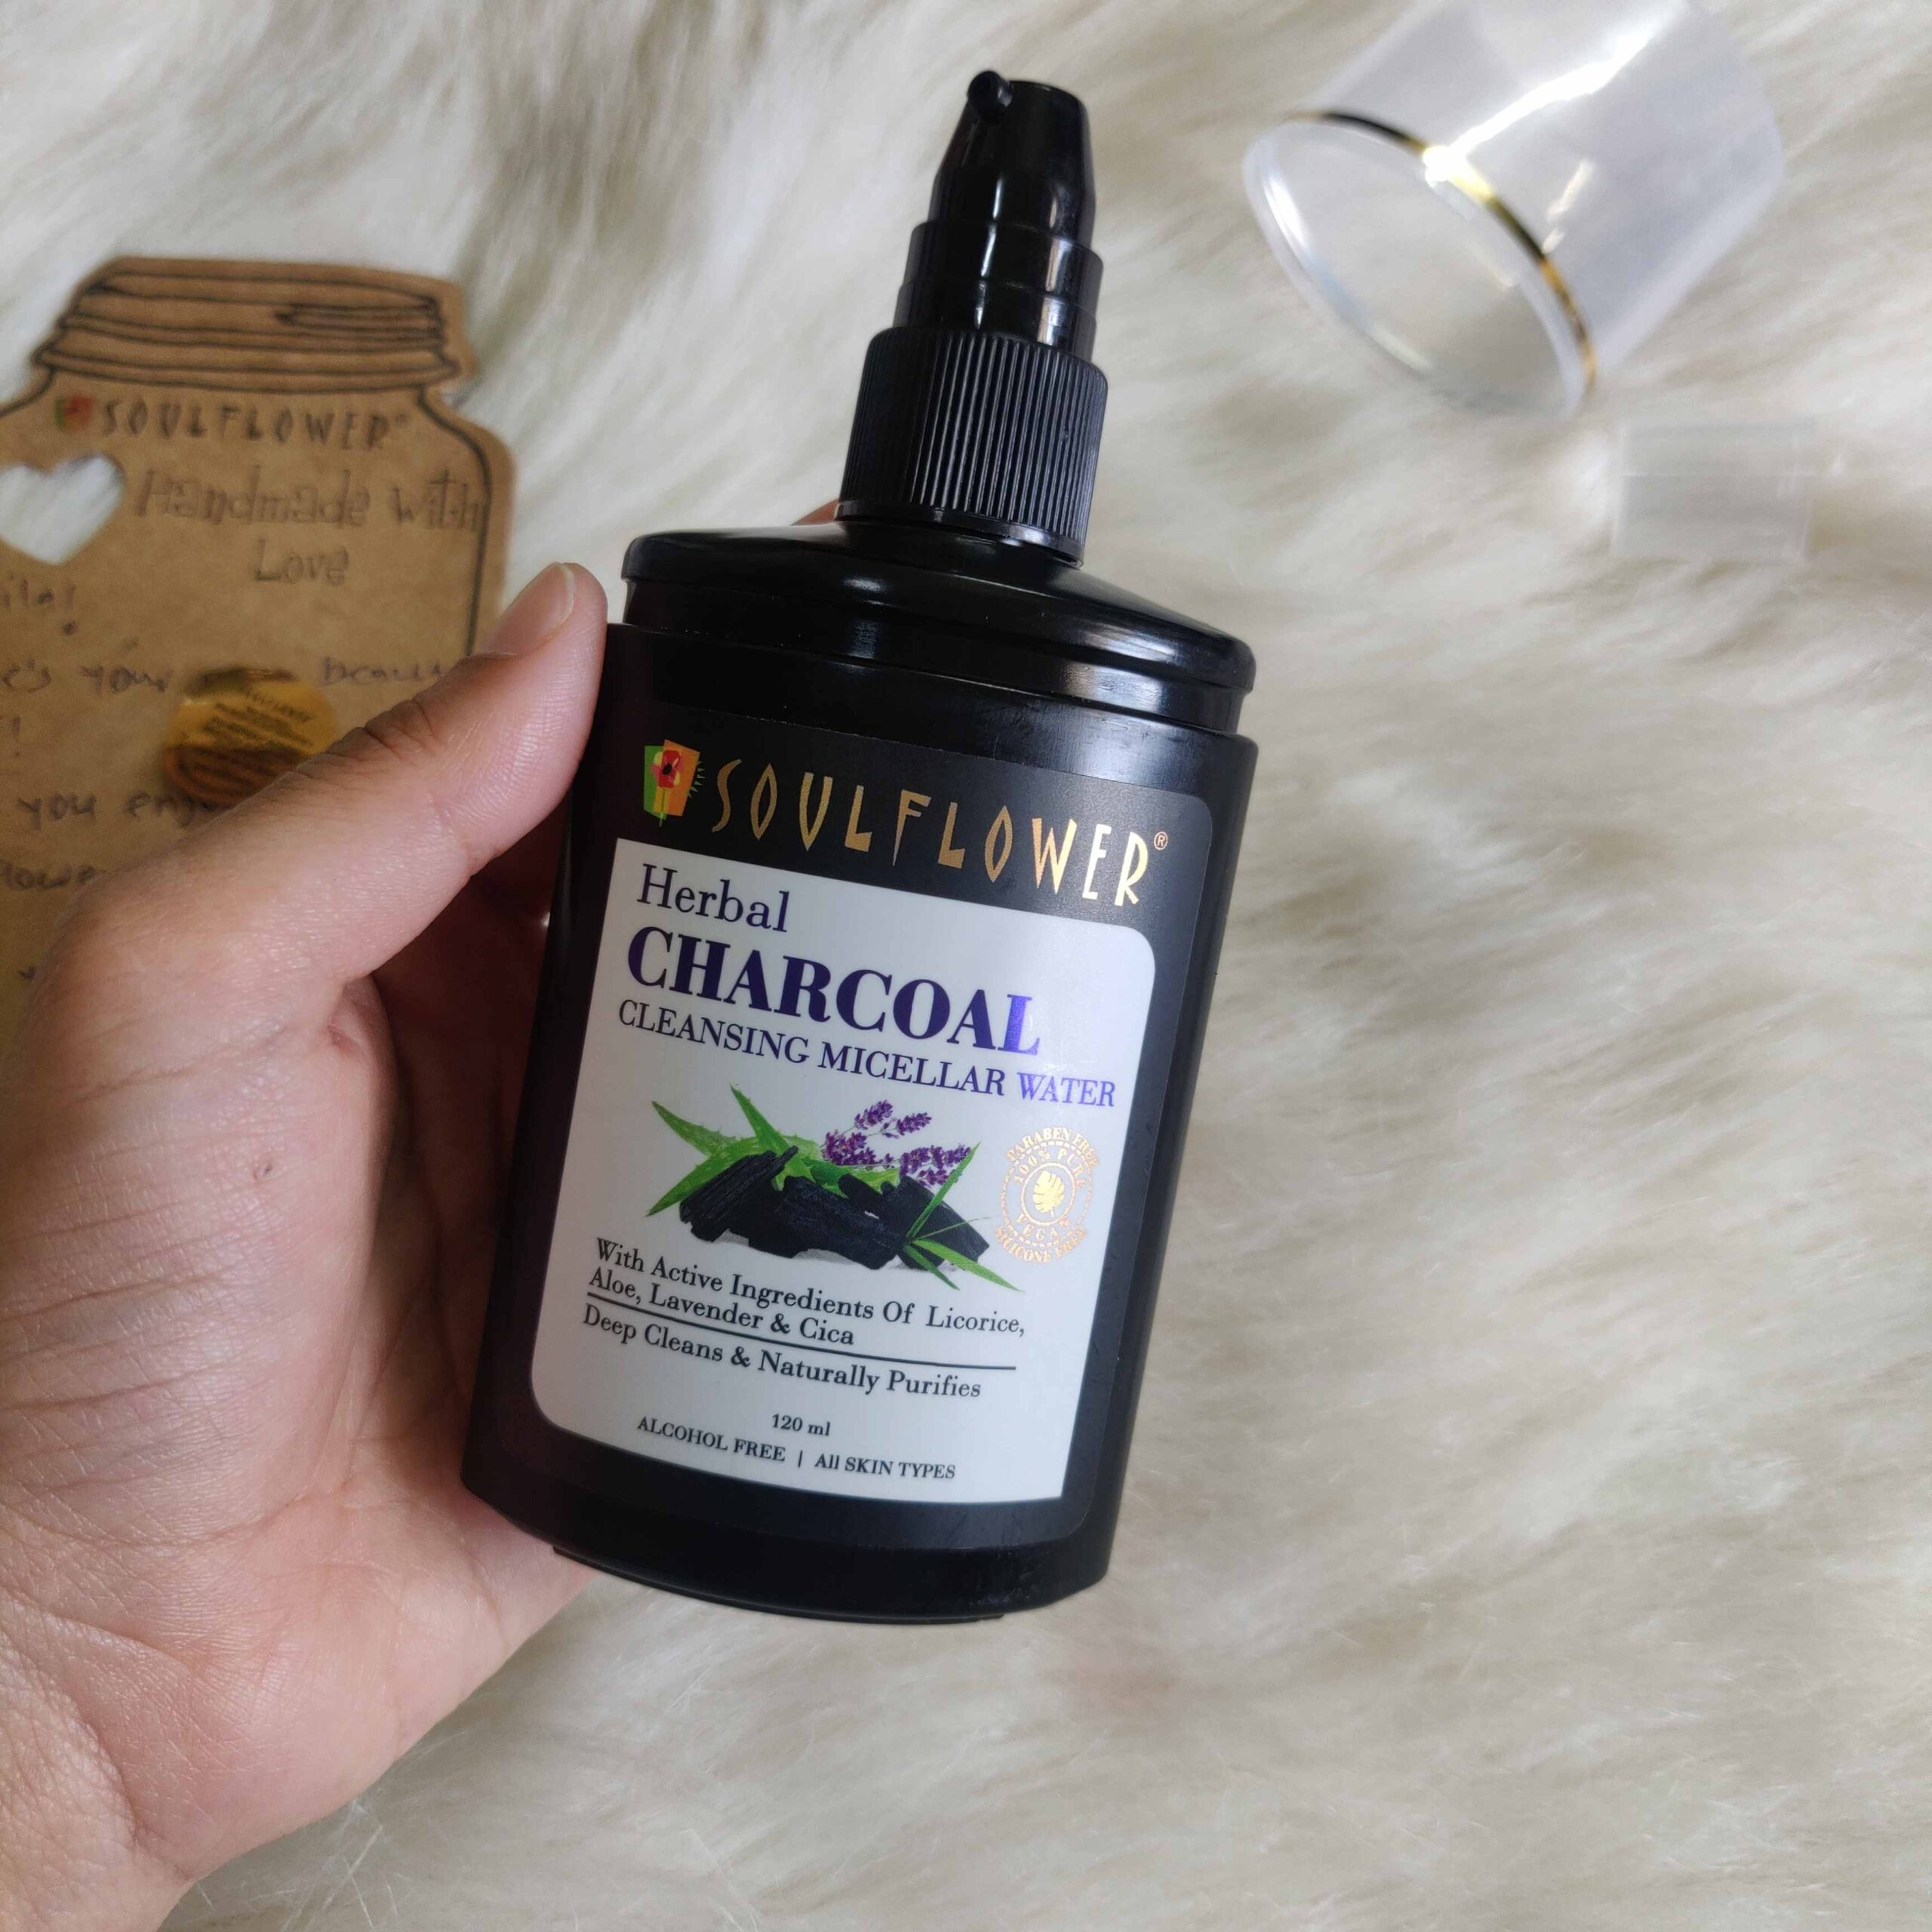 Soulflower Charcoal Cleansing Micellar Water Review